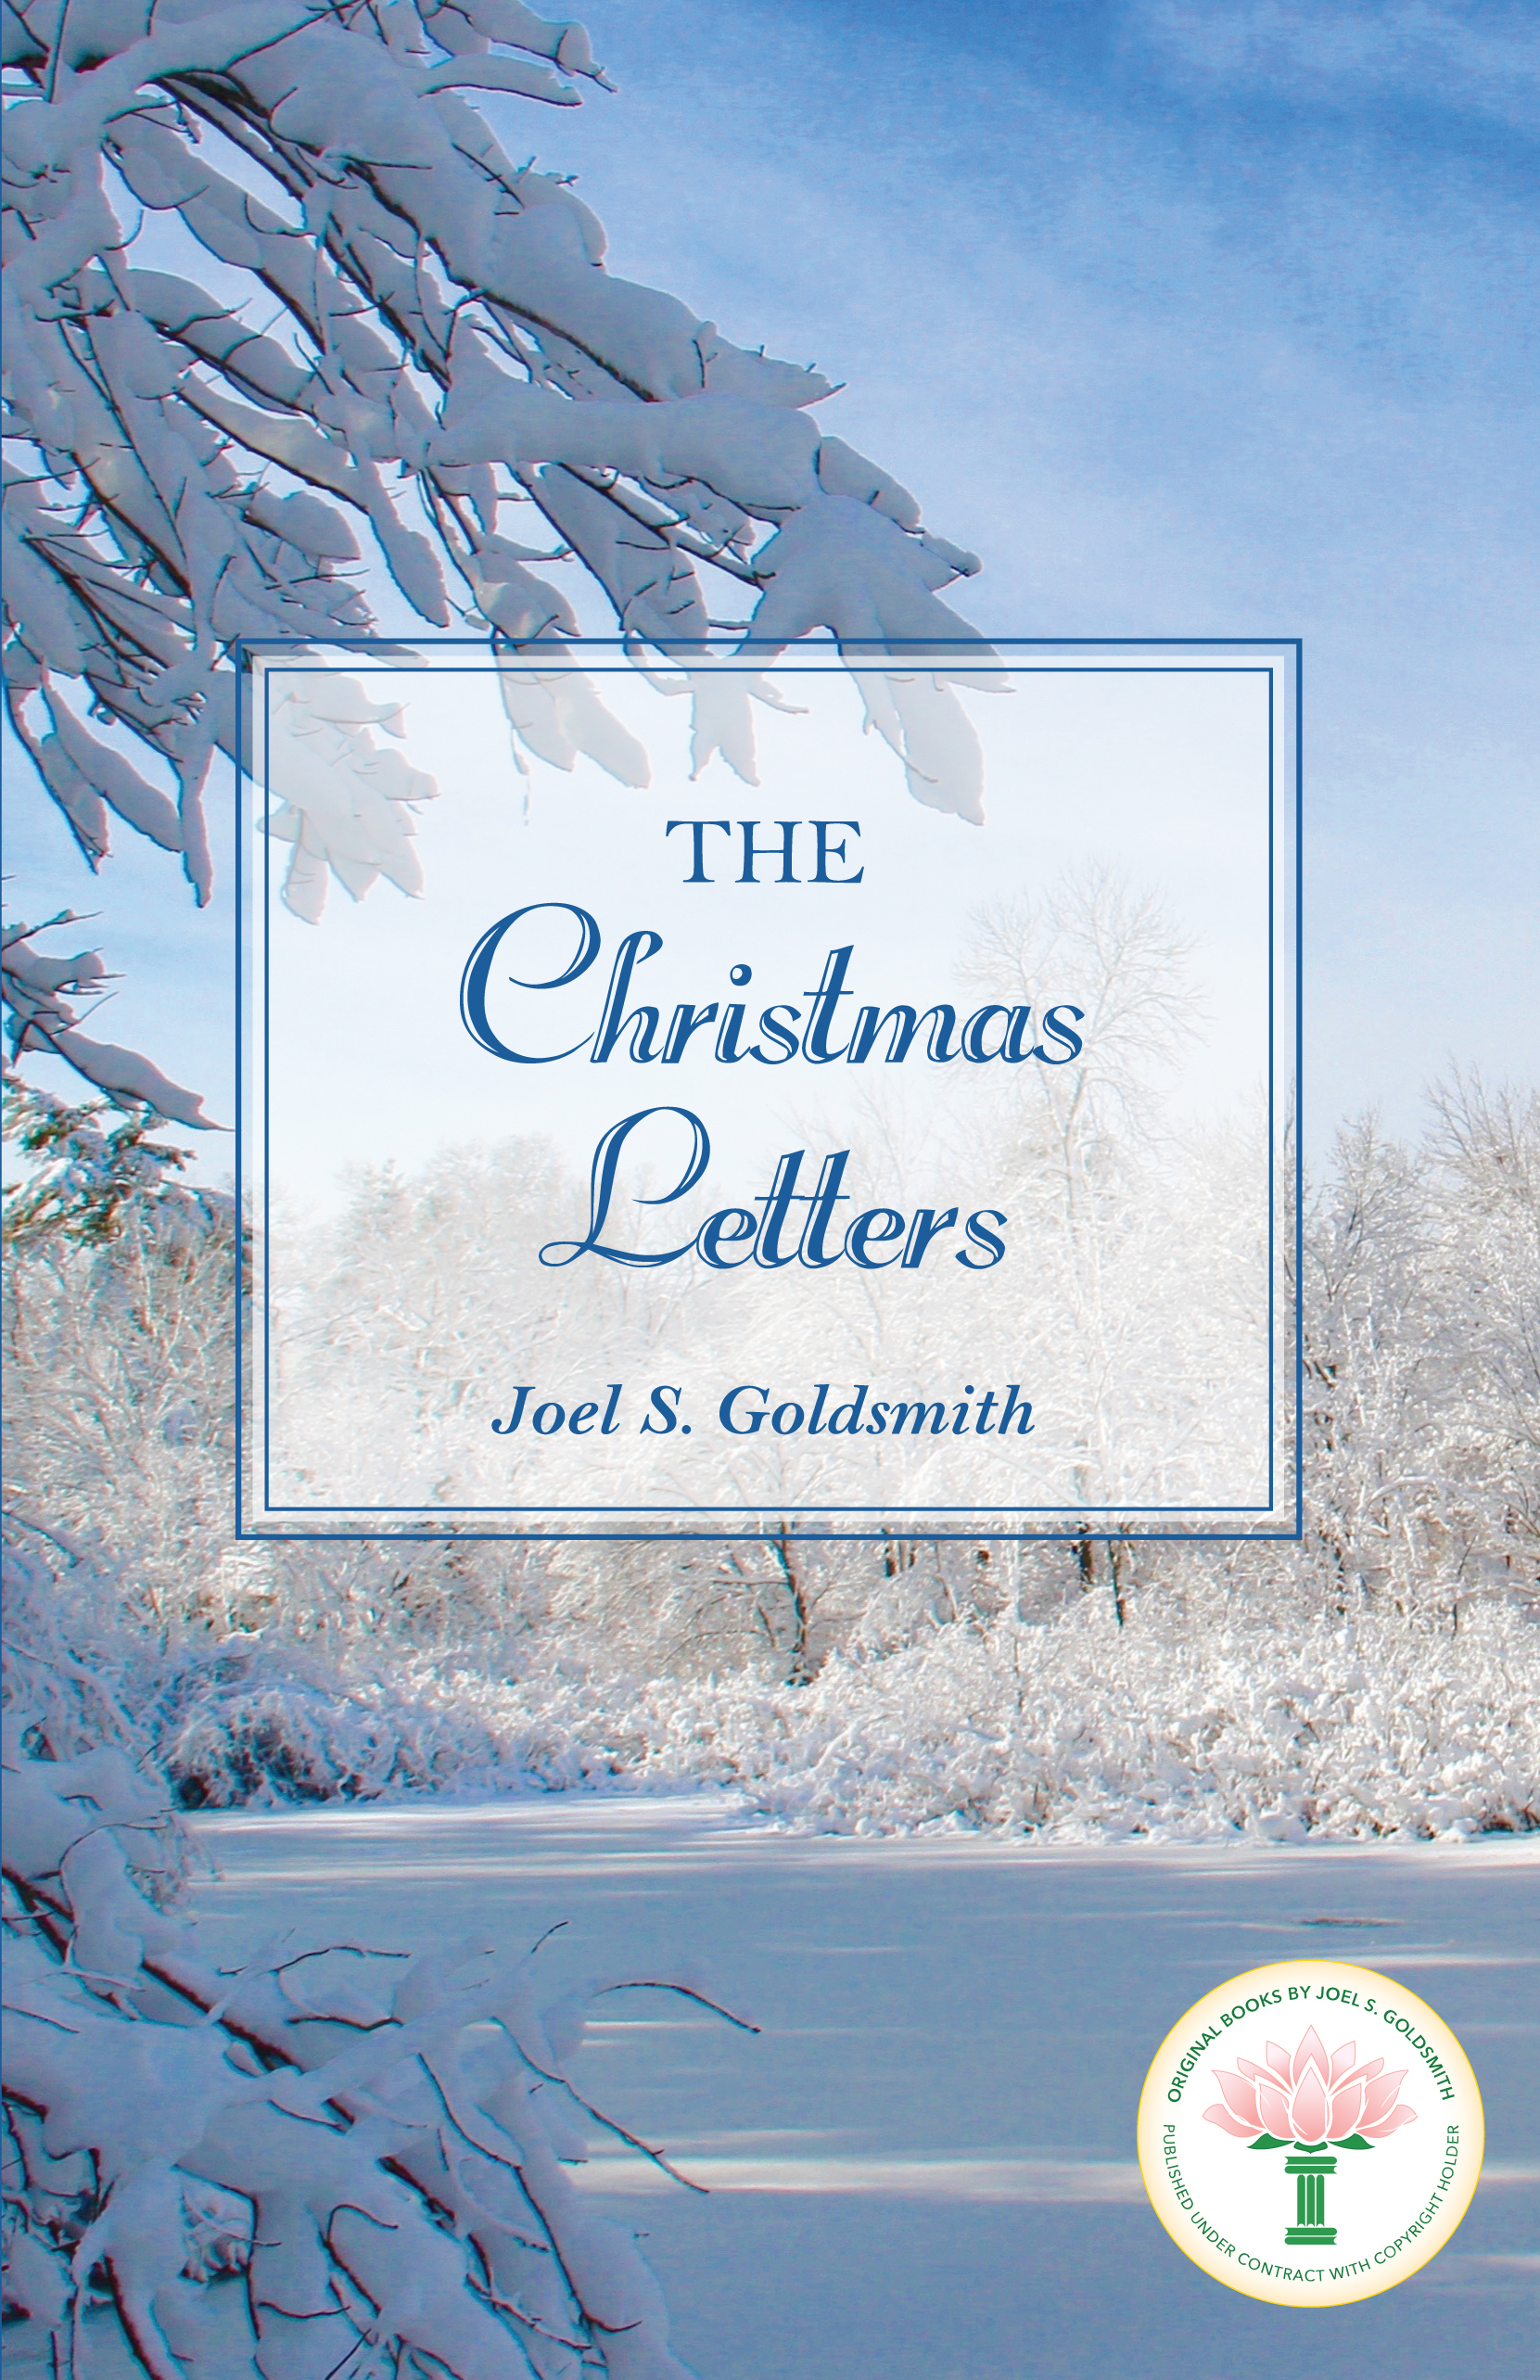 Christmas Letters - coverwseal